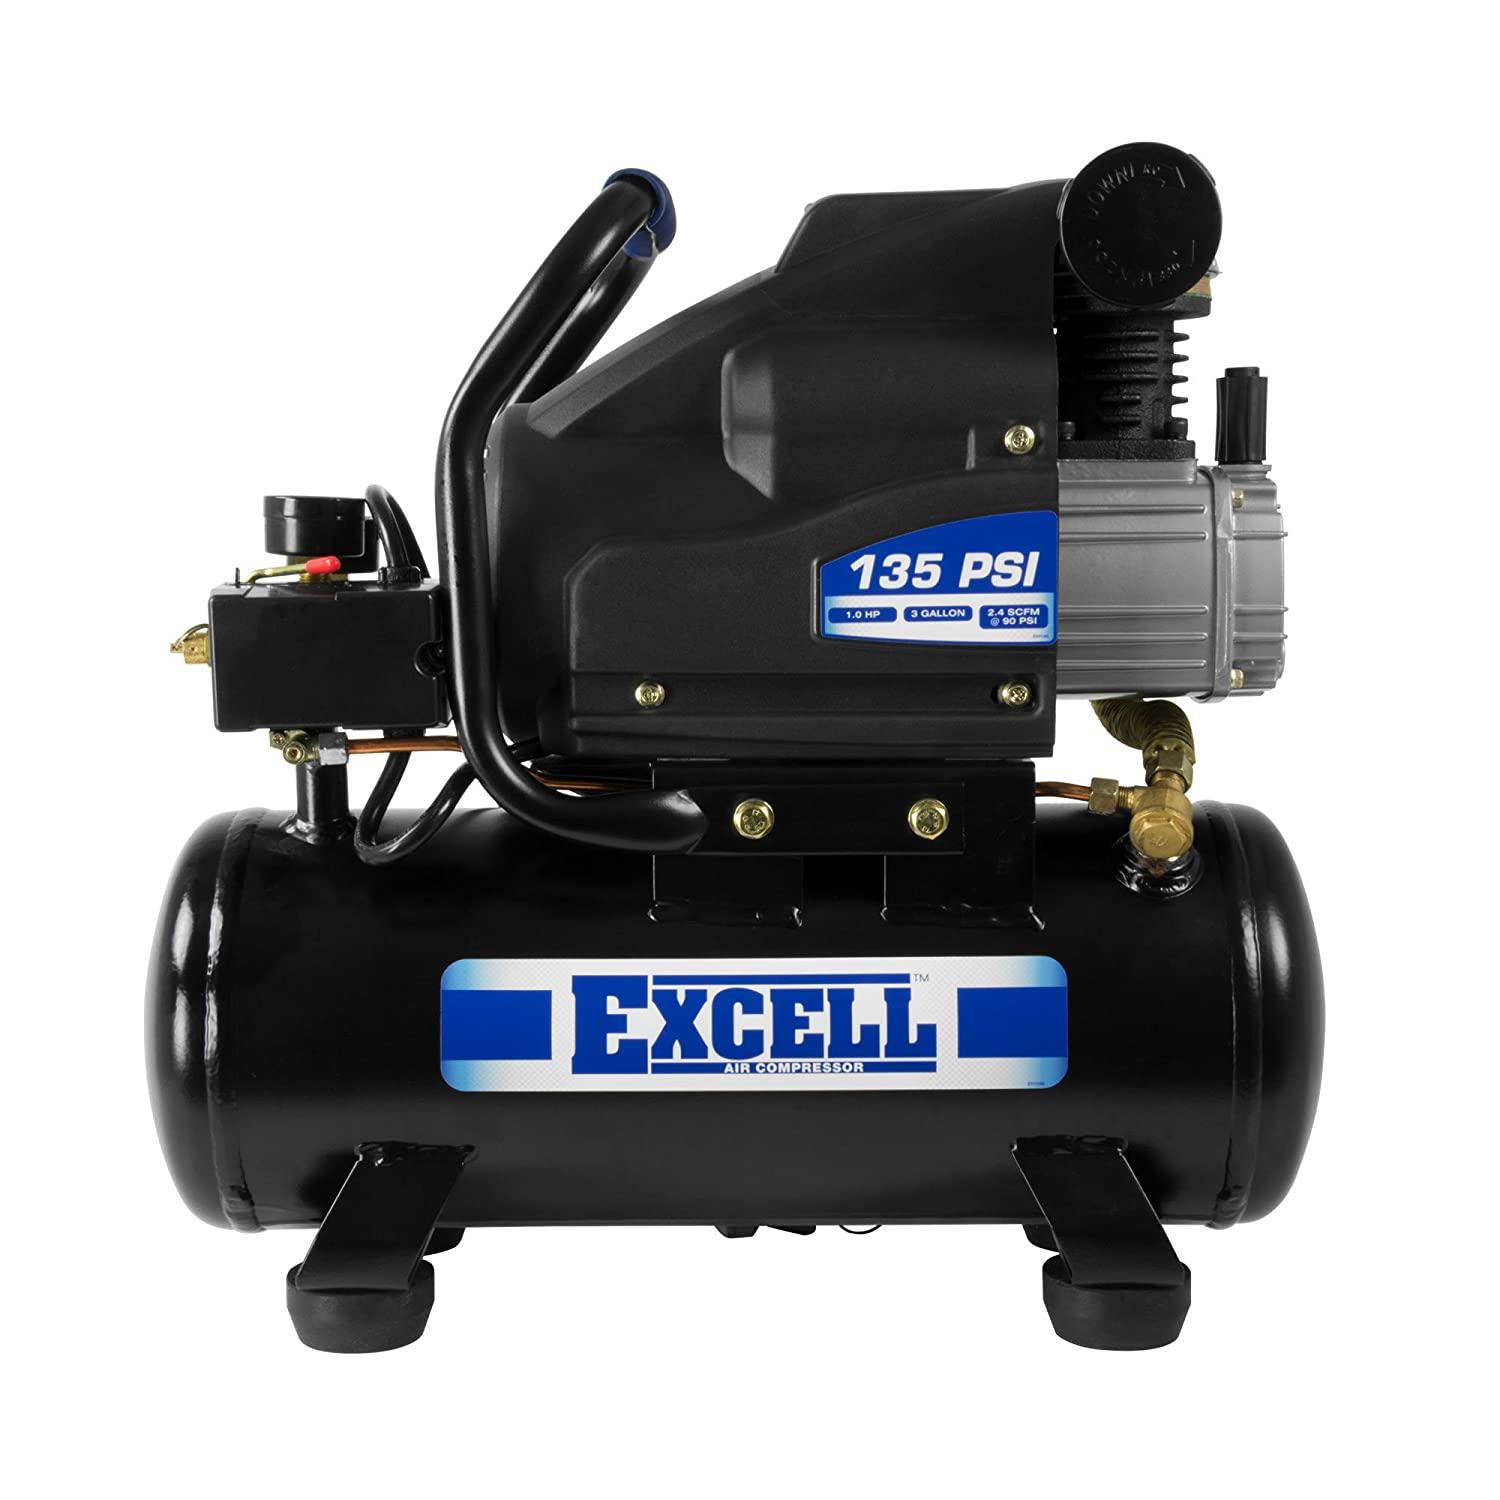 Excell 3 Gallon Oil Lubricated Air Compressor - L13Hpe EXCELL Air Compressors